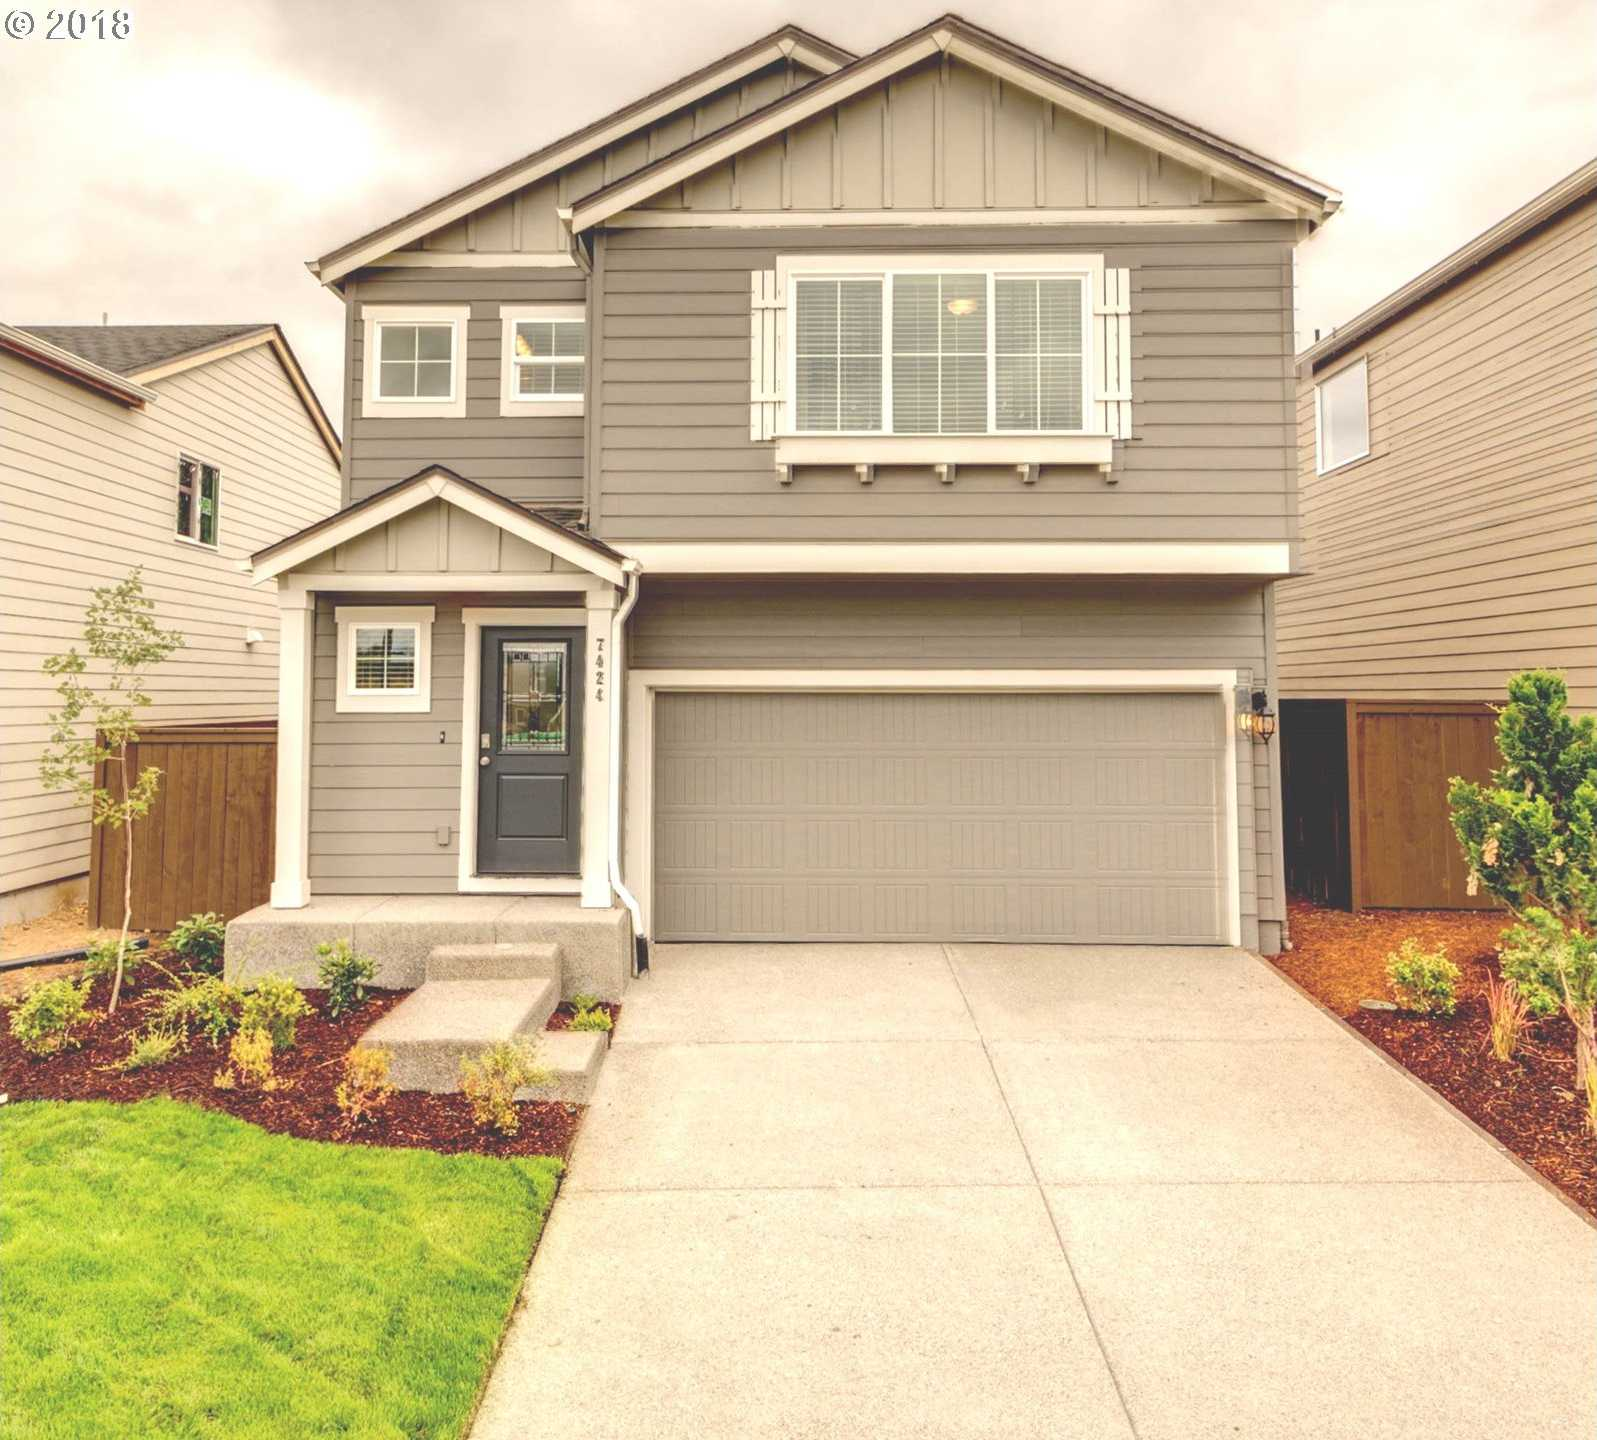 $496,995 - 4Br/3Ba -  for Sale in Orchards At Abbey Creek, Portland